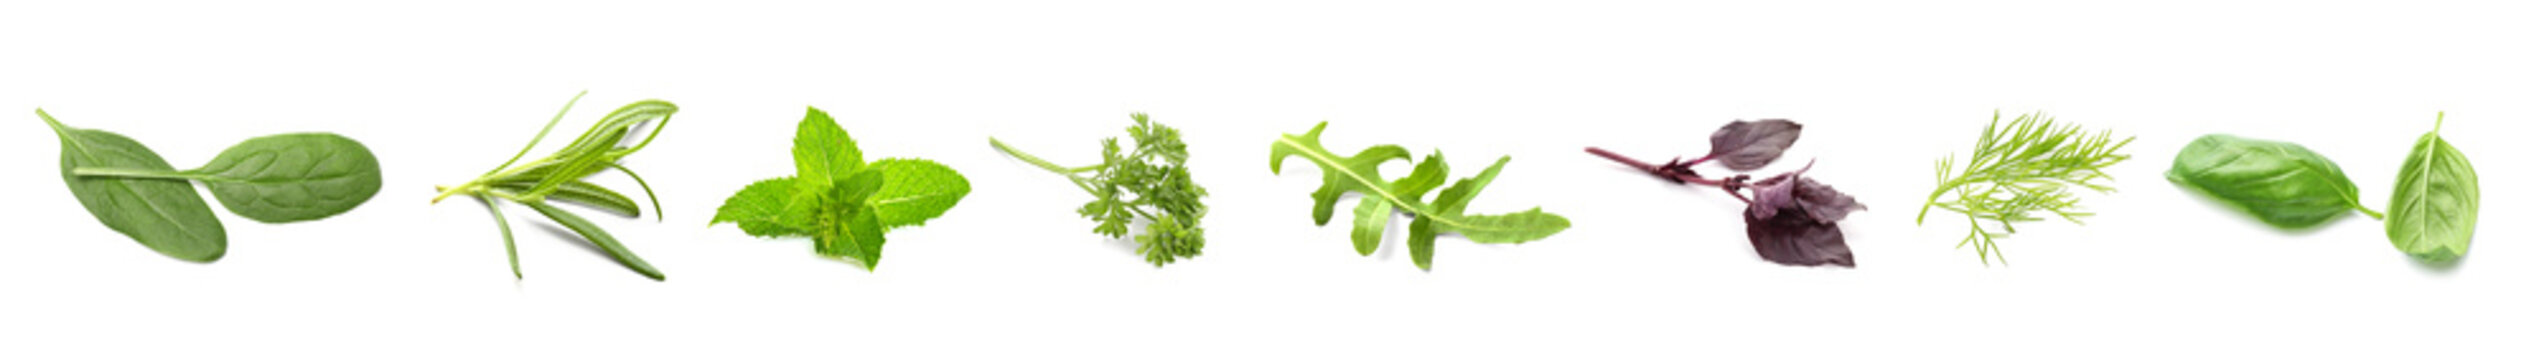 Different fresh herbs on white background